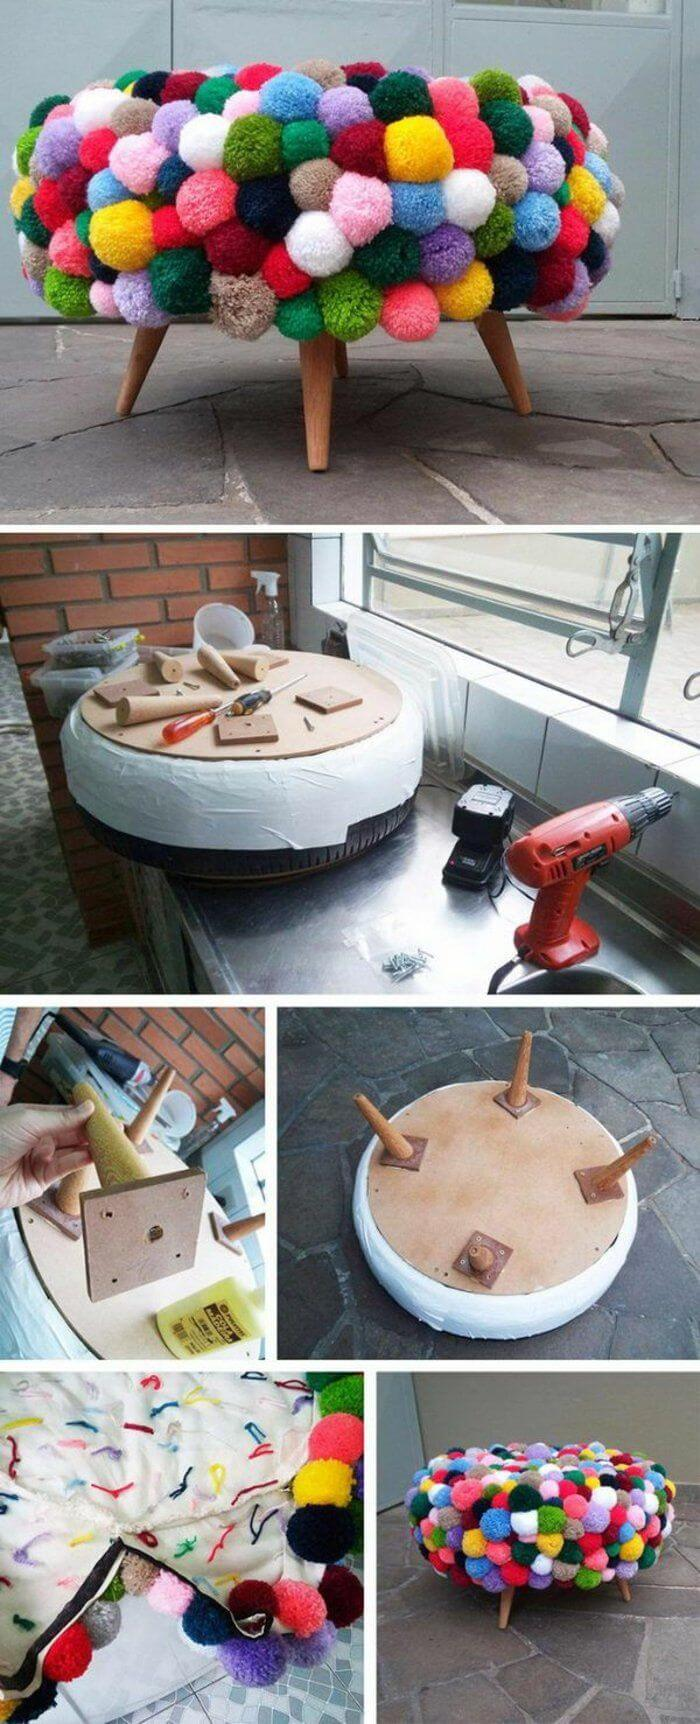 05-weekend-diy-projects-ideas-homebnc.jpg